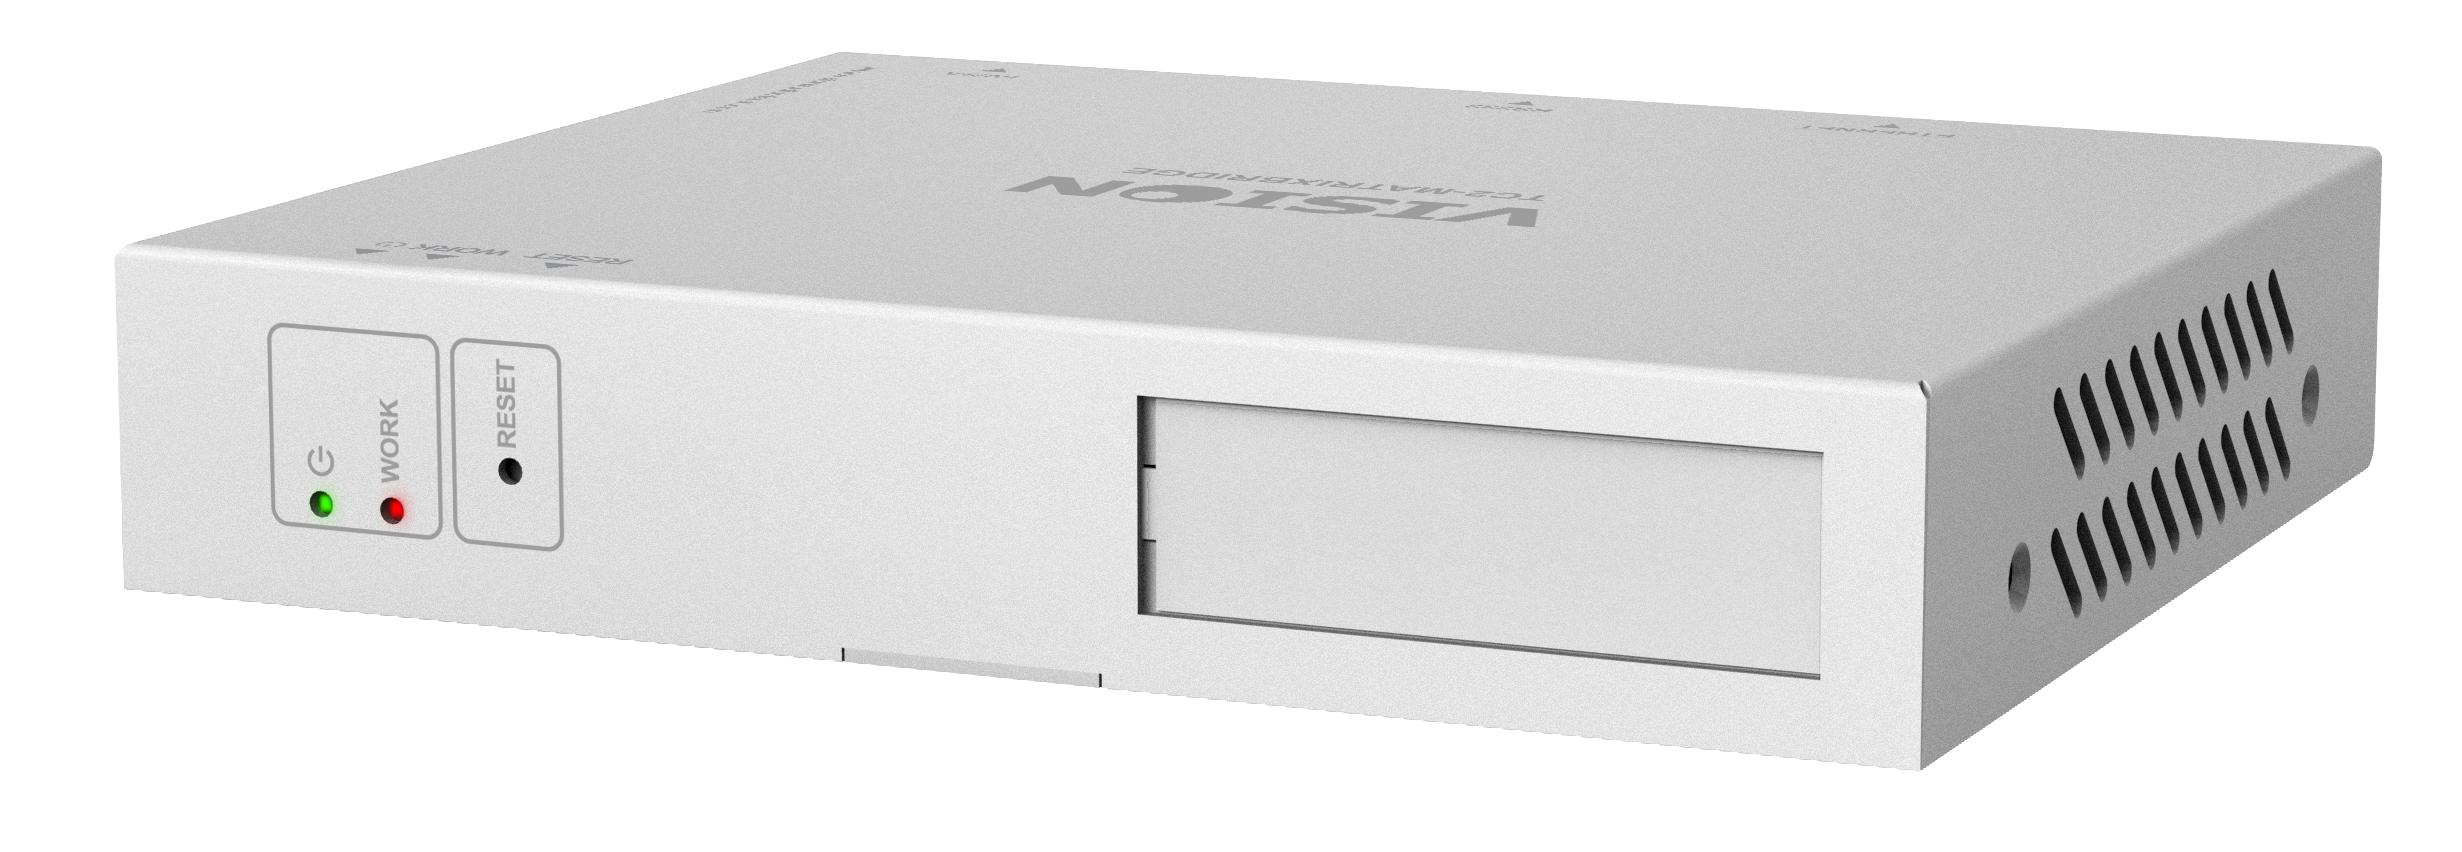 Vision TECHCONNECT MATRIX HDMI-OVER-IP RECEIVER Converts HDMI V1.4 signal up to 1080P into packets for tran